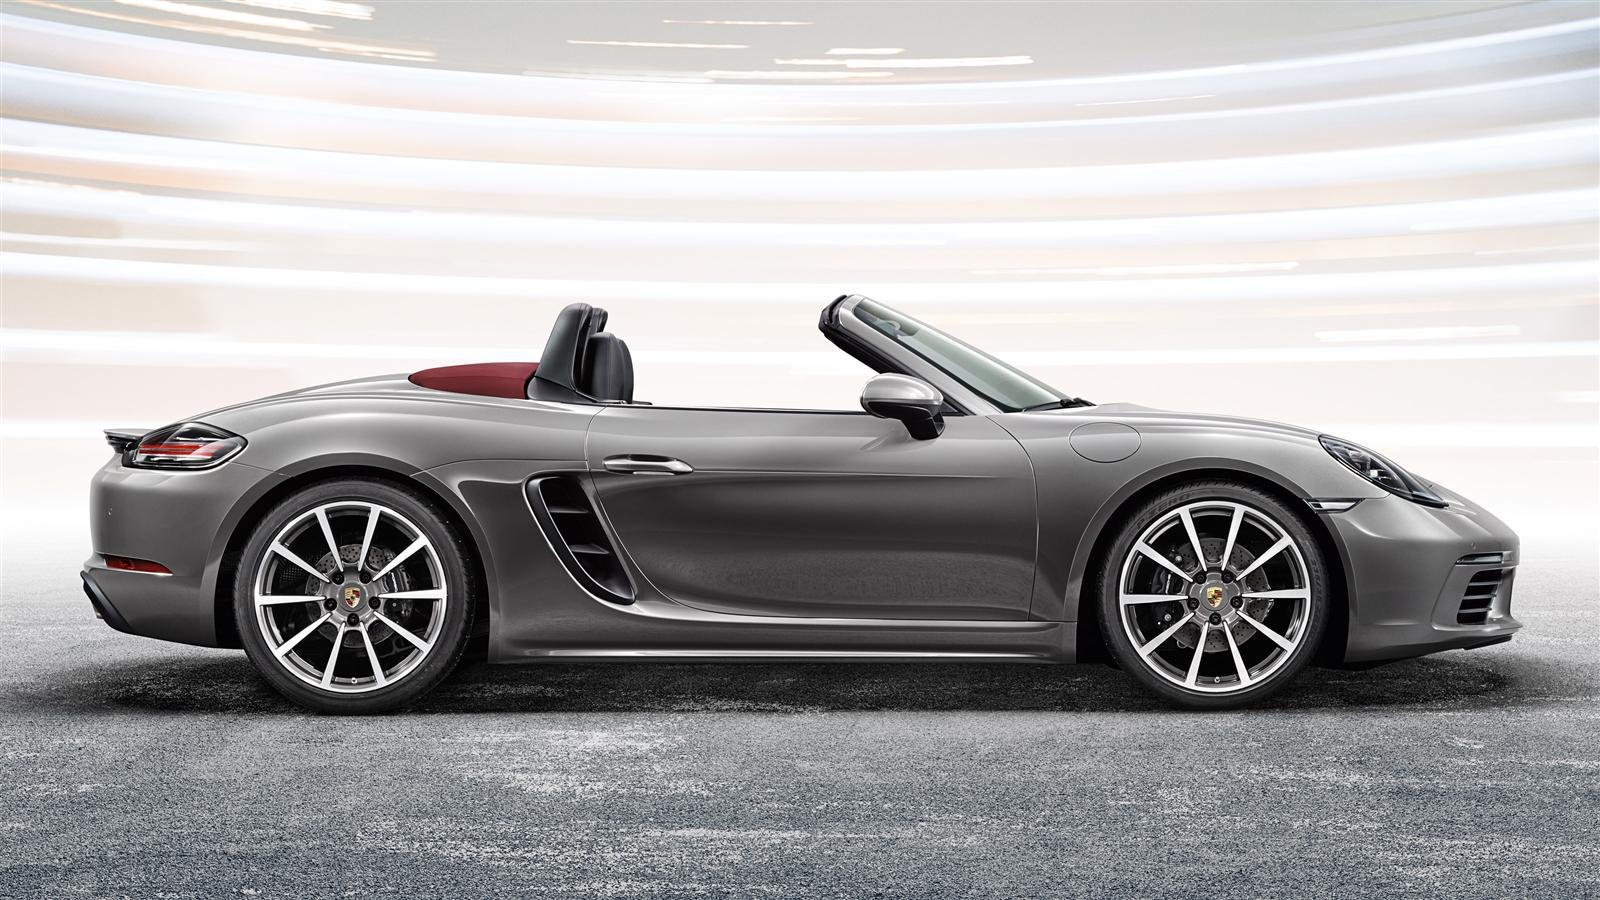 2017 porsche 718 boxster picture 663466 car review top speed. Black Bedroom Furniture Sets. Home Design Ideas